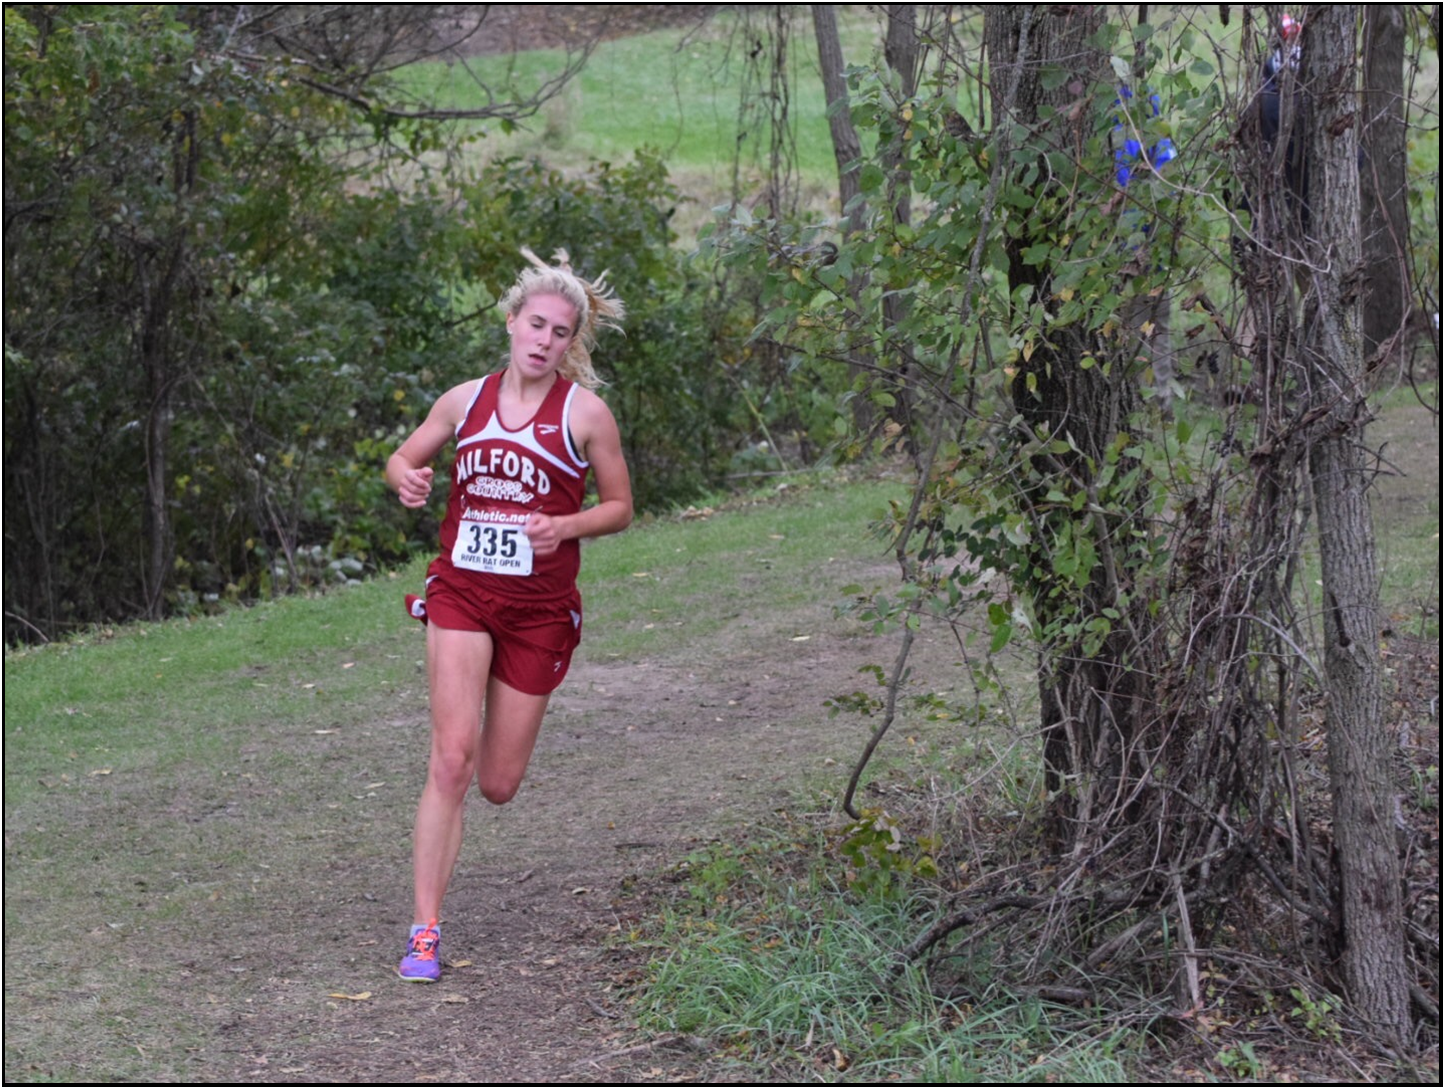 Senior Victoria Heiligenthal  running at the 2018 River Rat Willow Metro Park. (Photos courtesy of  Victoria Heiligenthal)